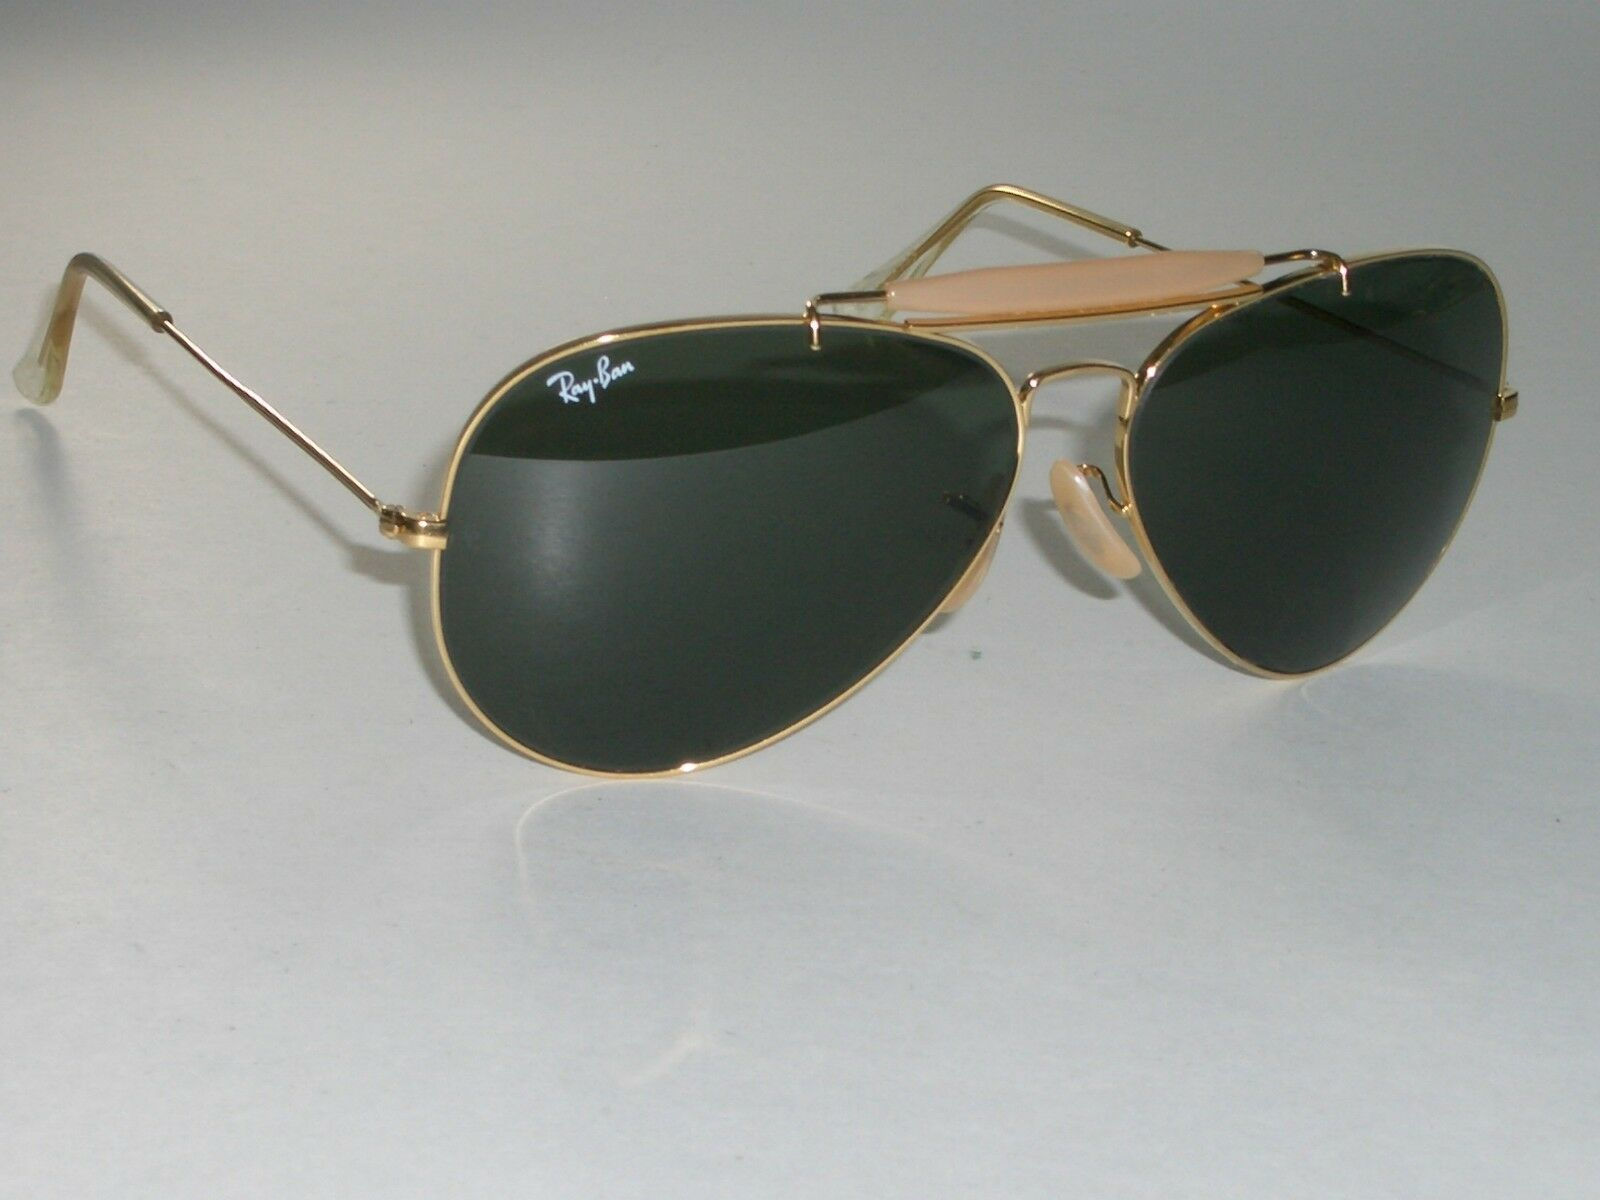 63a50e41570f 62 14mm Vintage Bausch   Lomb Ray Ban GP G15 Outdoorsman II Aviator  Sunglasses for sale online